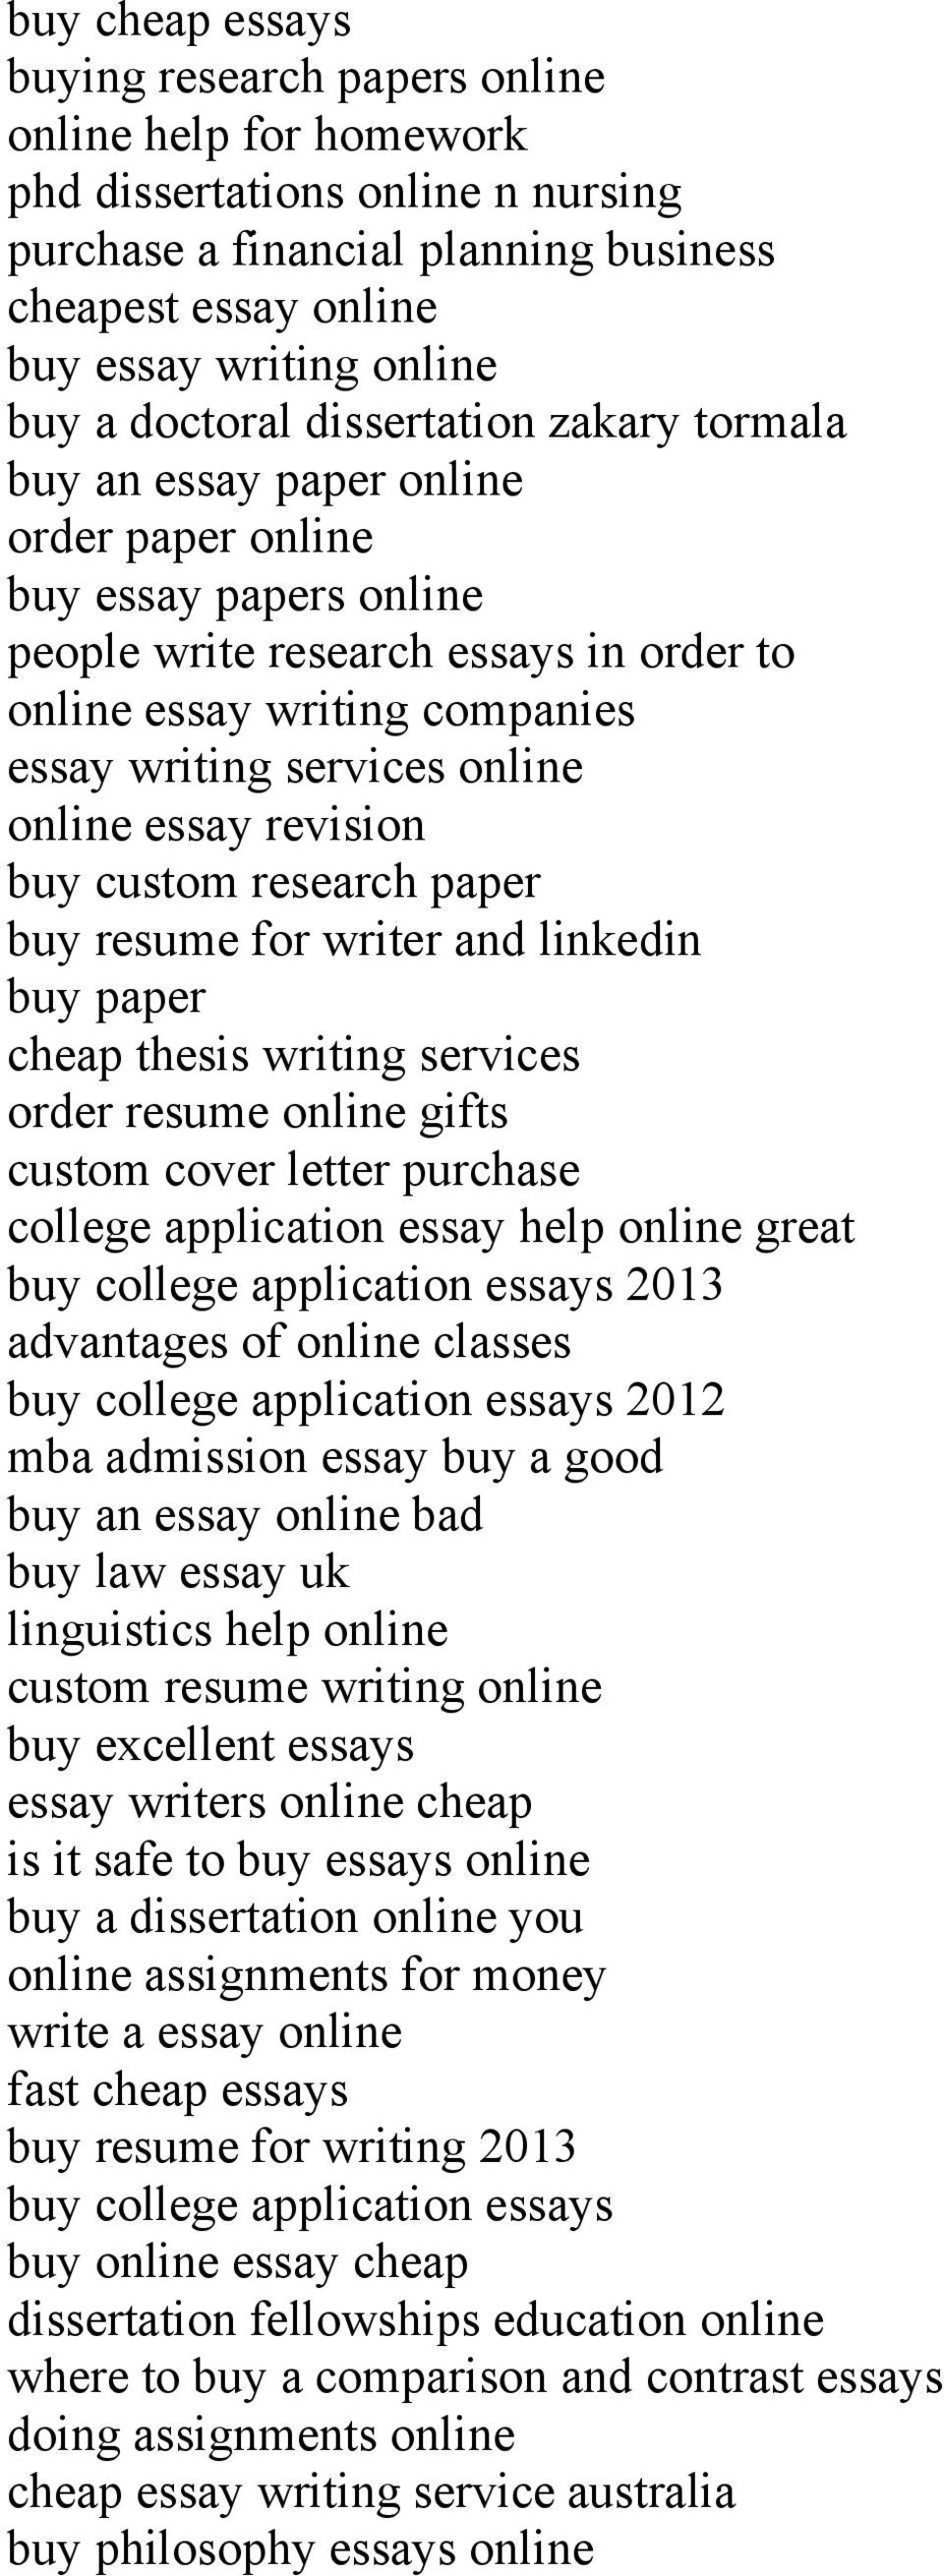 services online online essay revision buy custom research paper buy resume for writer and linkedin buy paper cheap thesis writing services order resume online gifts custom cover letter purchase